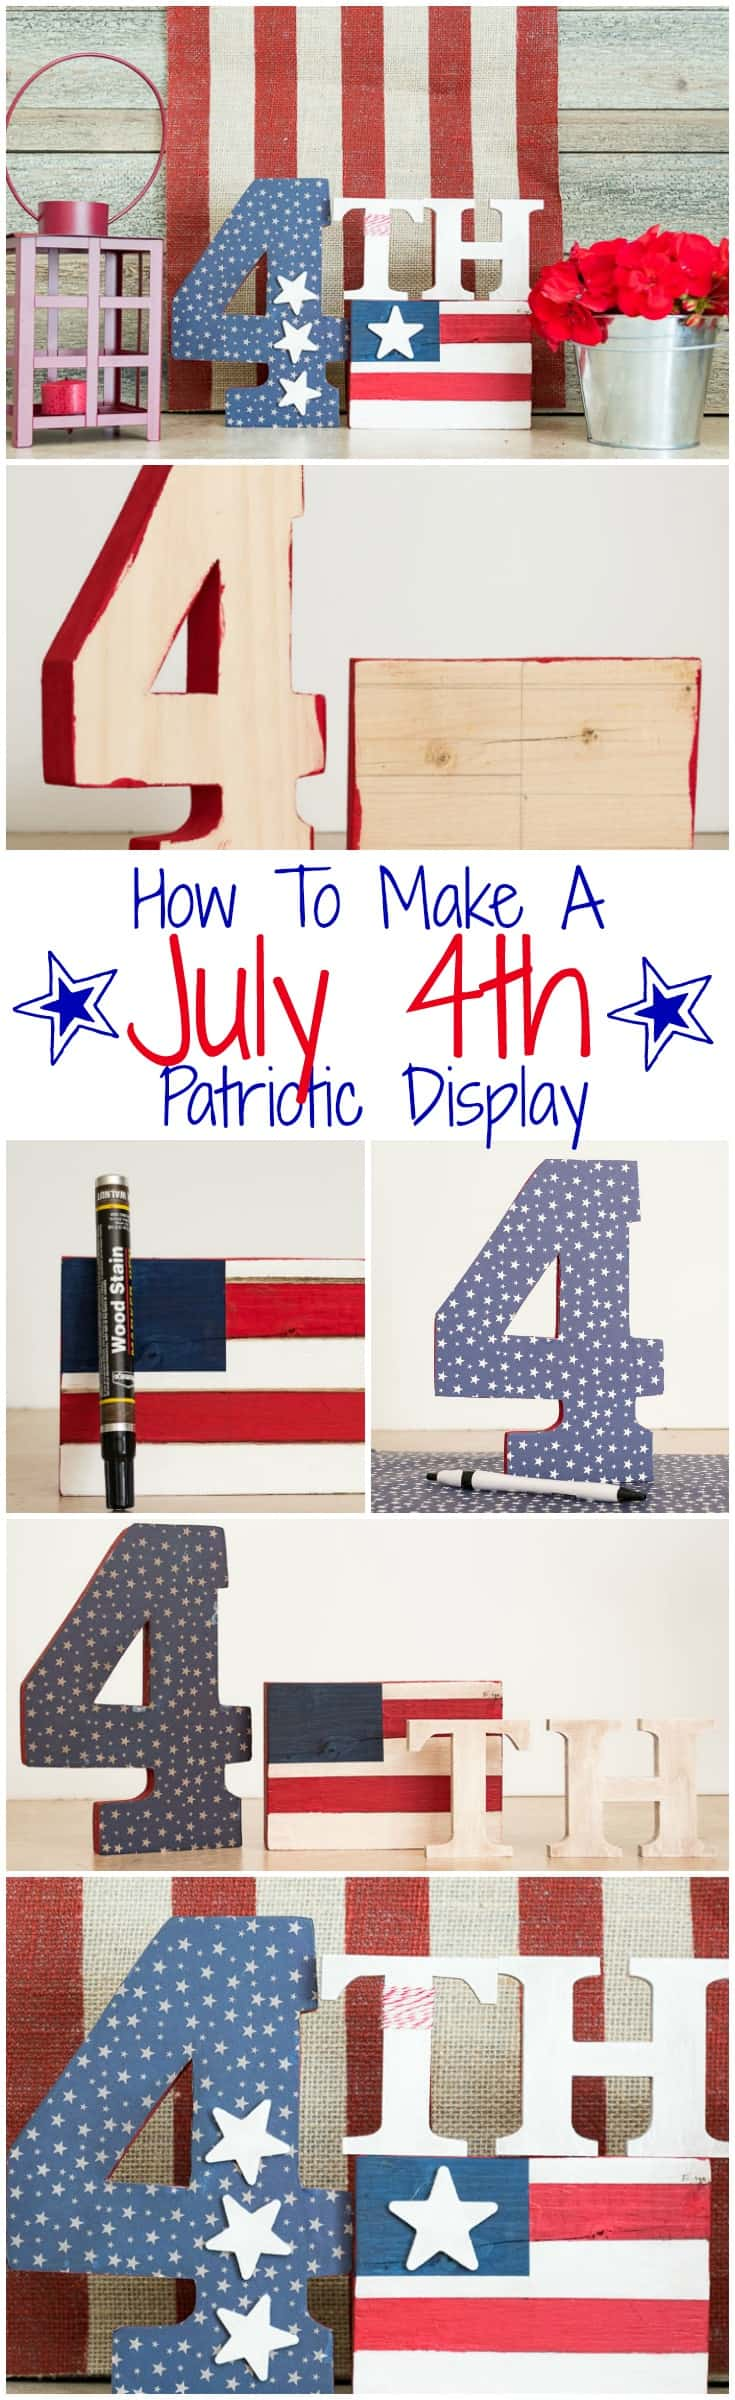 How to make a Patriotic Craft For Memorial Day, Flag Day And July 4th || Worthing Court